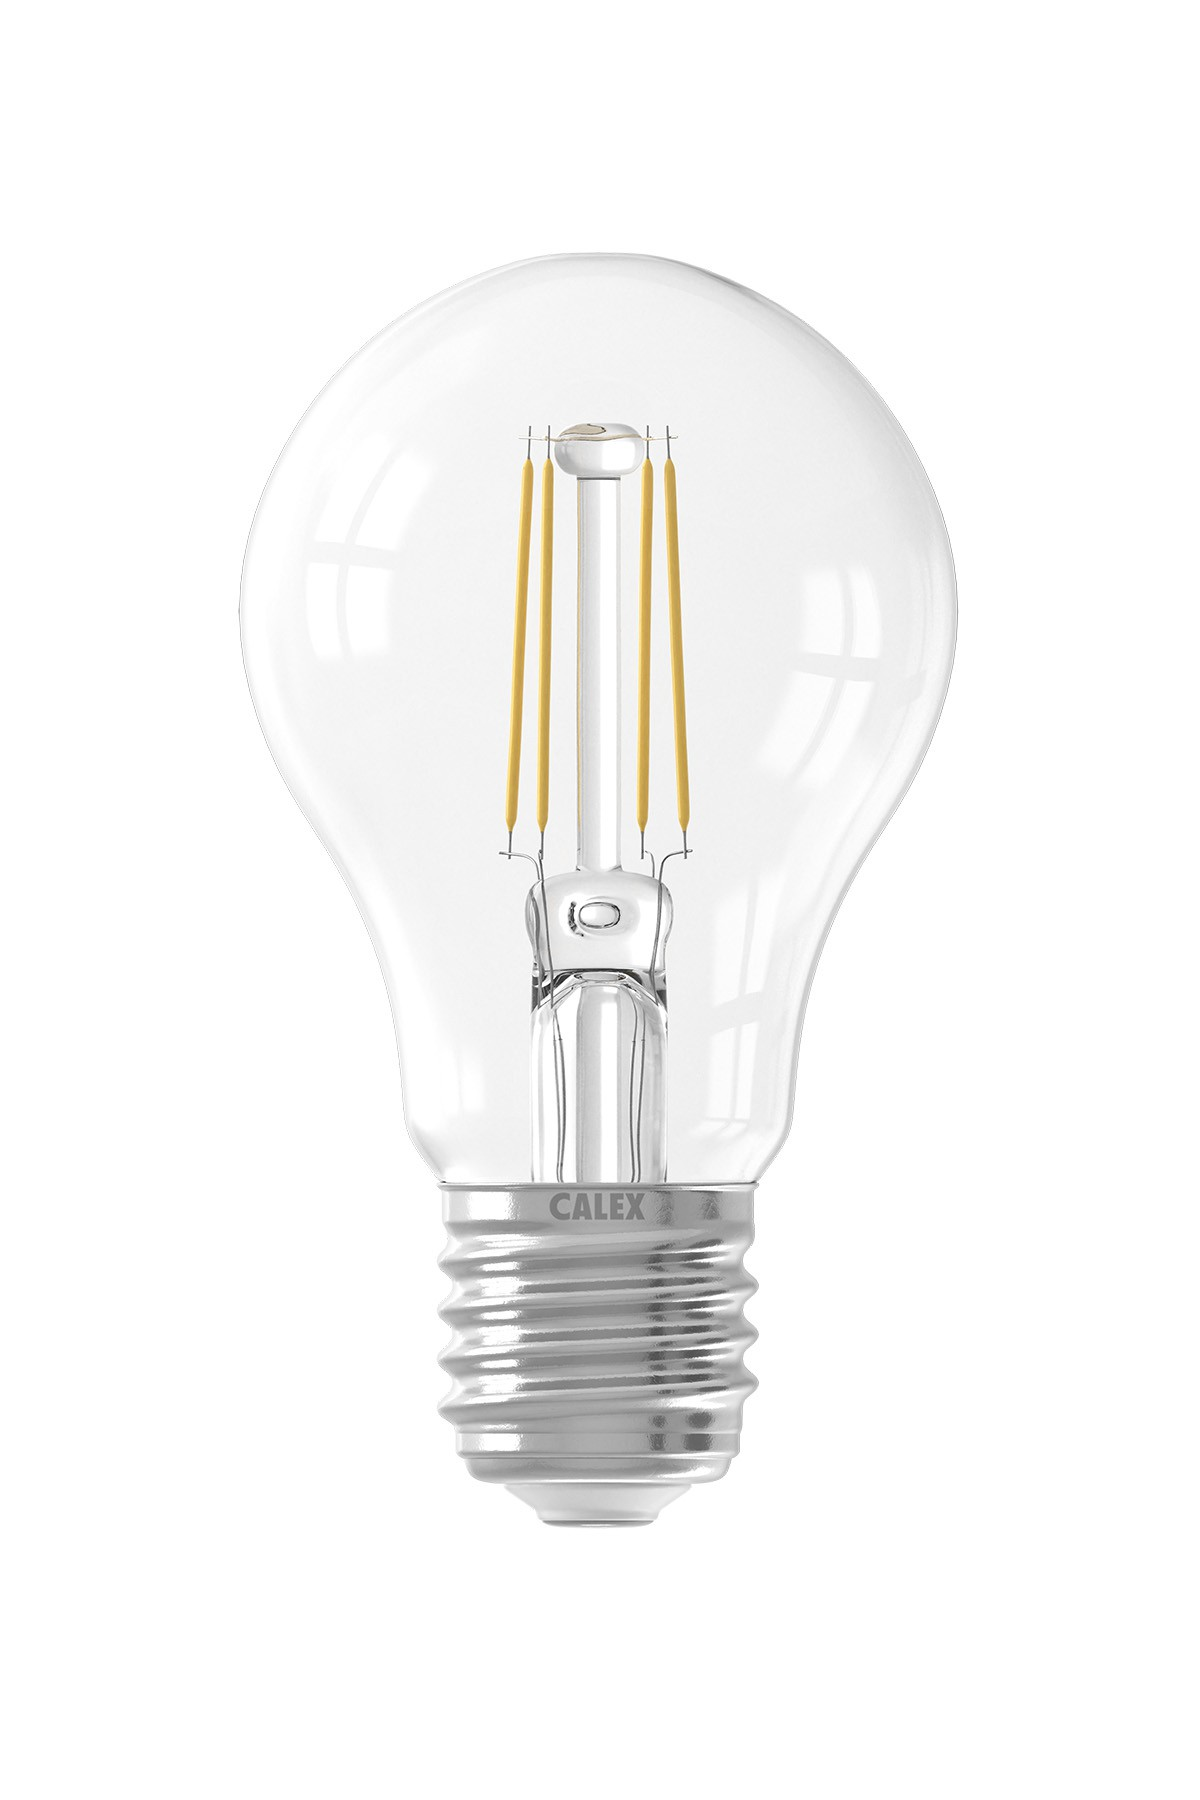 Calex LED Full Glass Filament GLS-lamp  220-240V 7W 810lm E27 A60, Clear 2700K CRI80 Dimmable